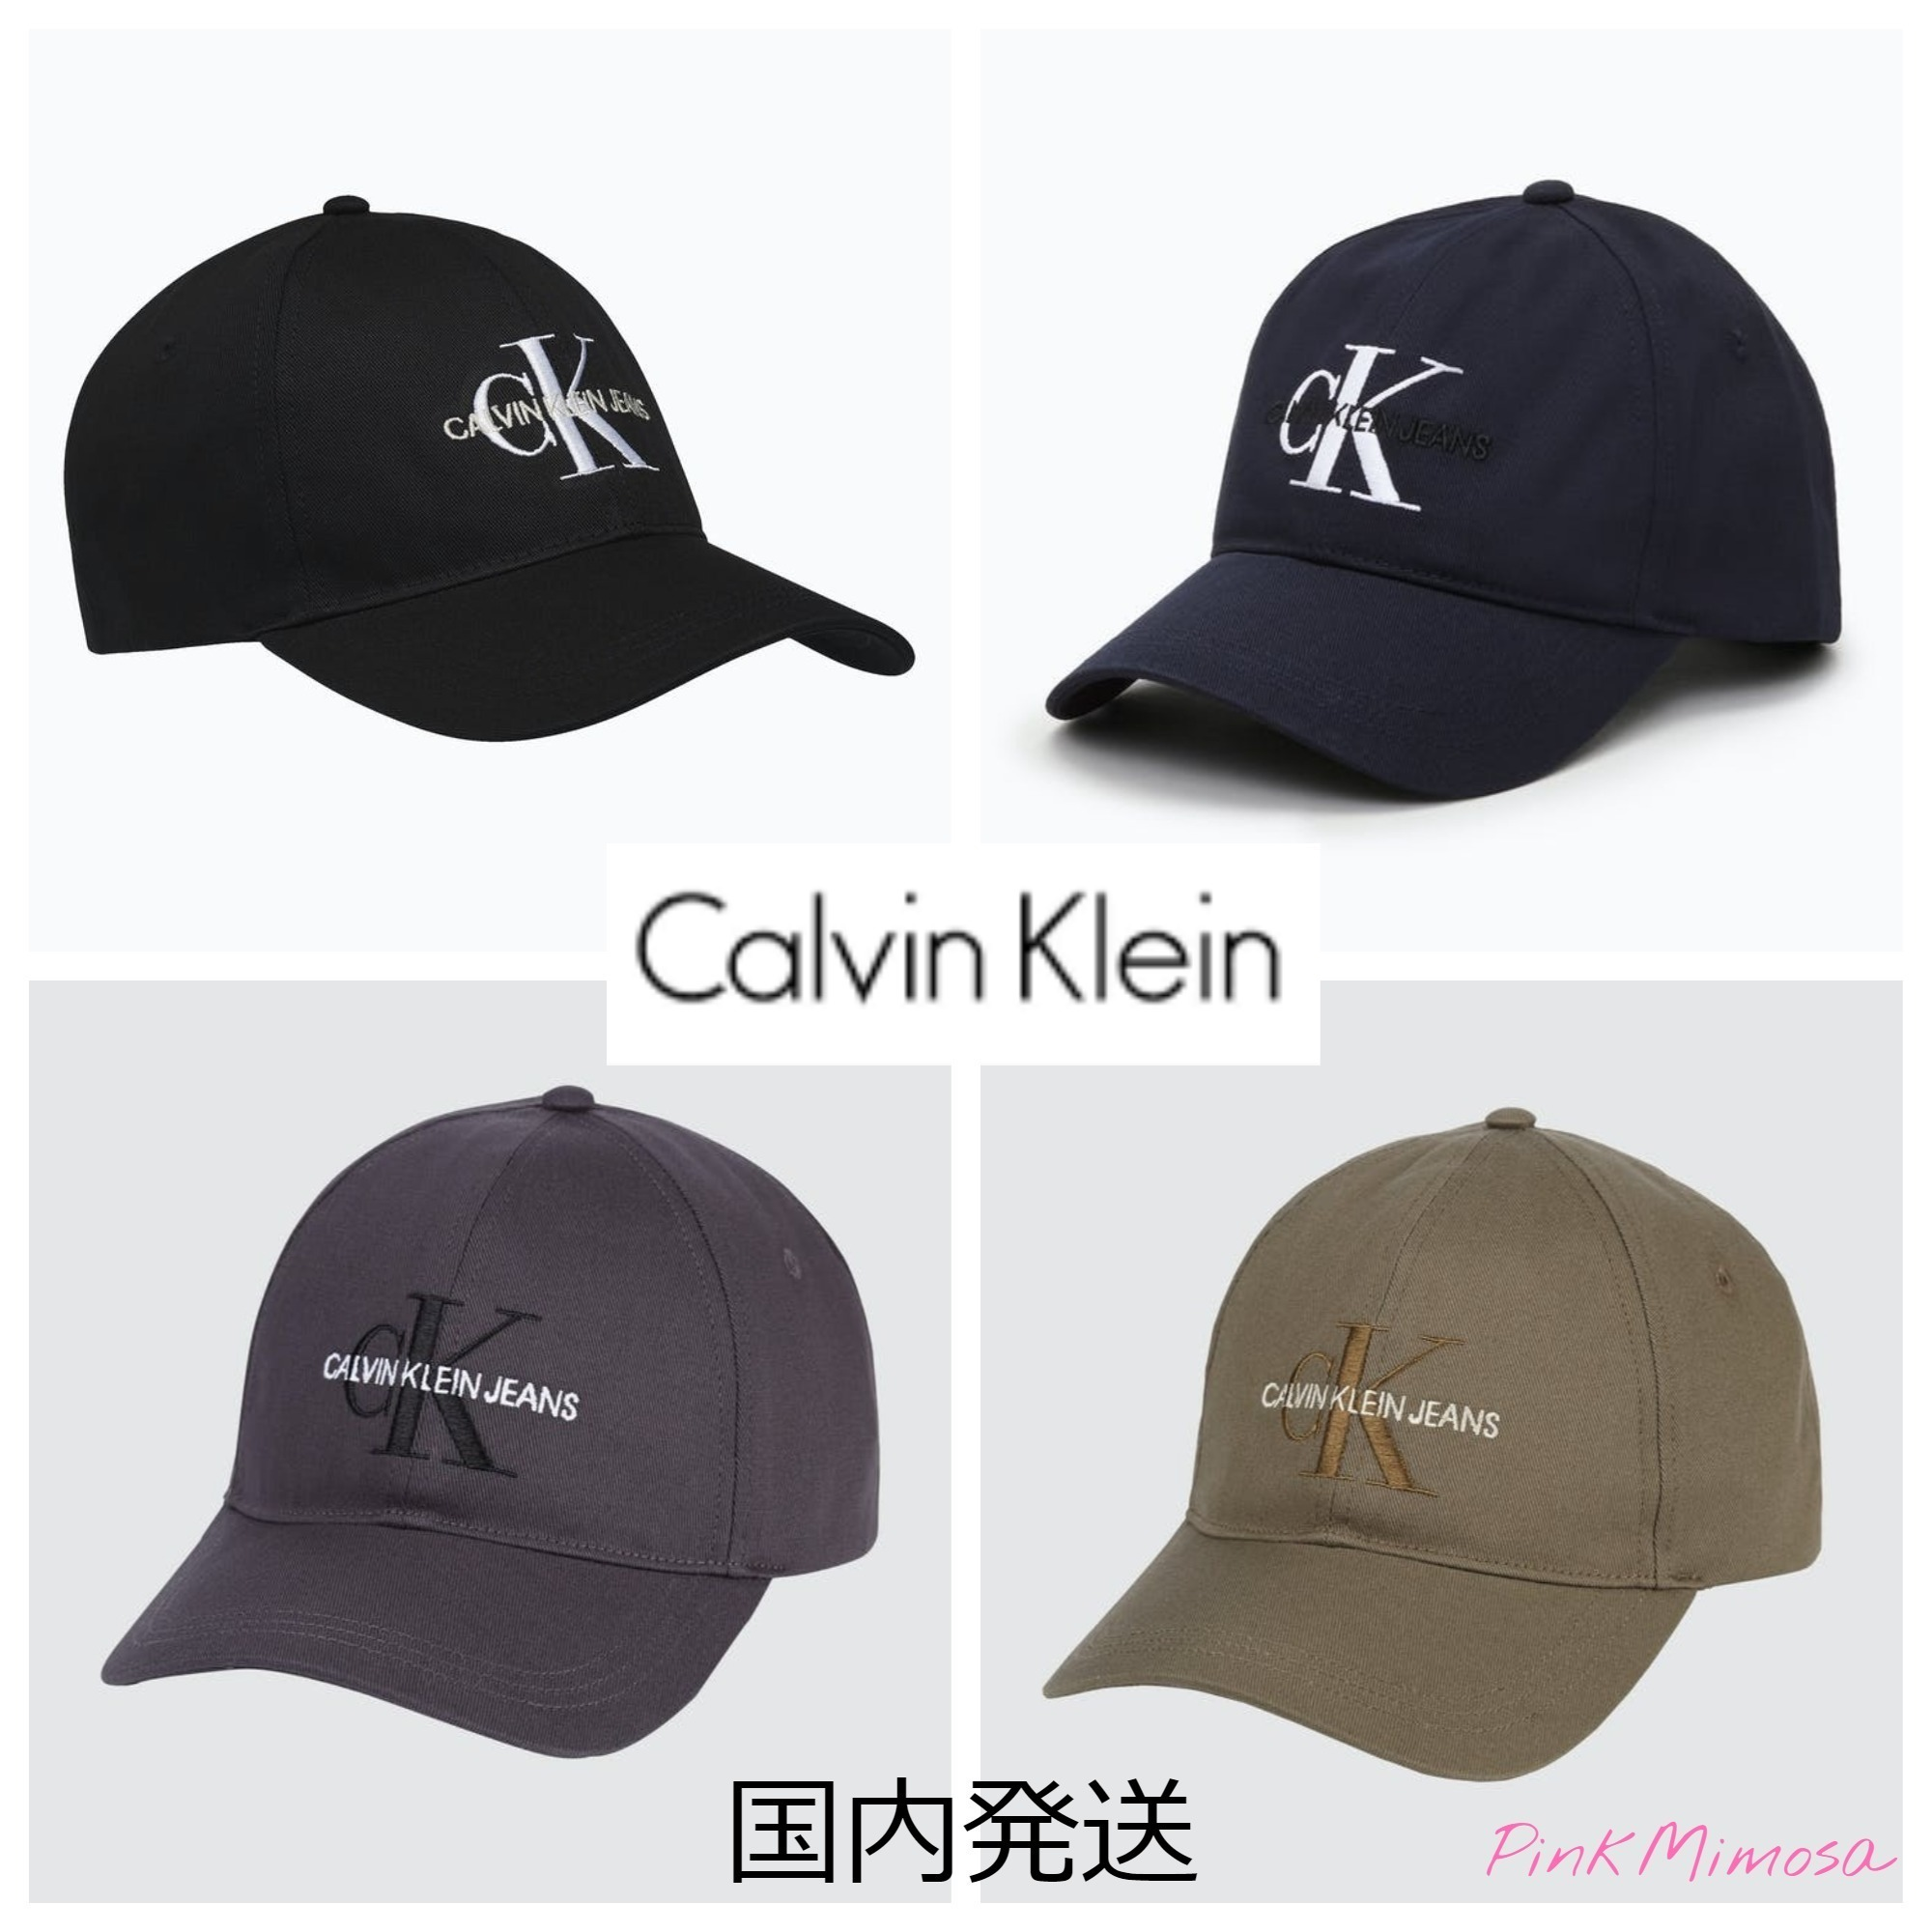 shop calvin klein accessories